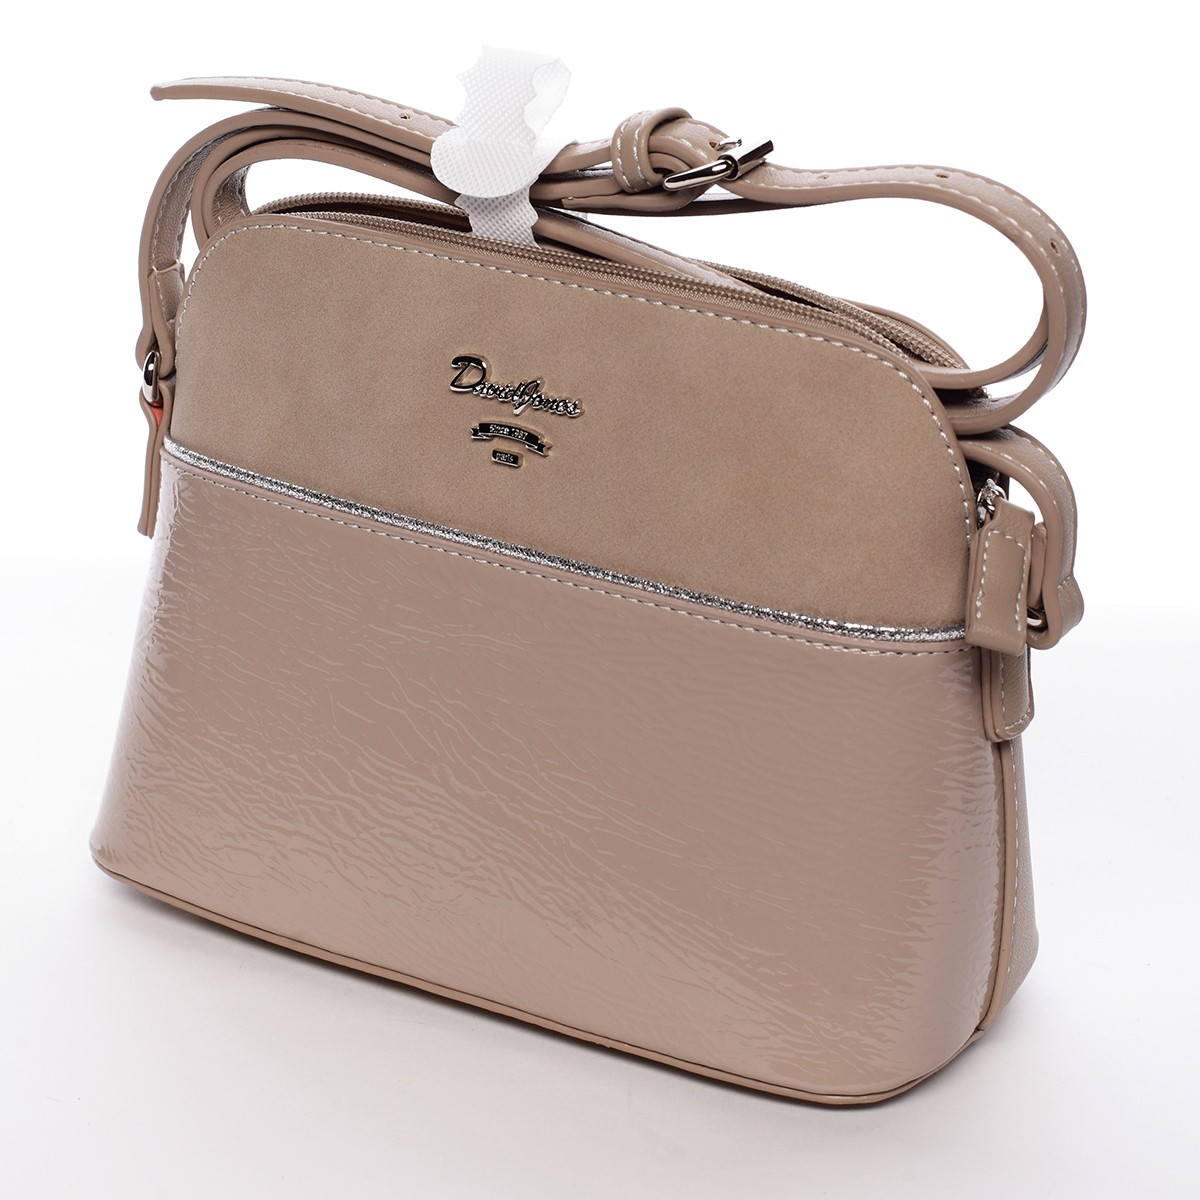 5a86c0563b Dámská crossbody kabelka David Jones Kelly - camel